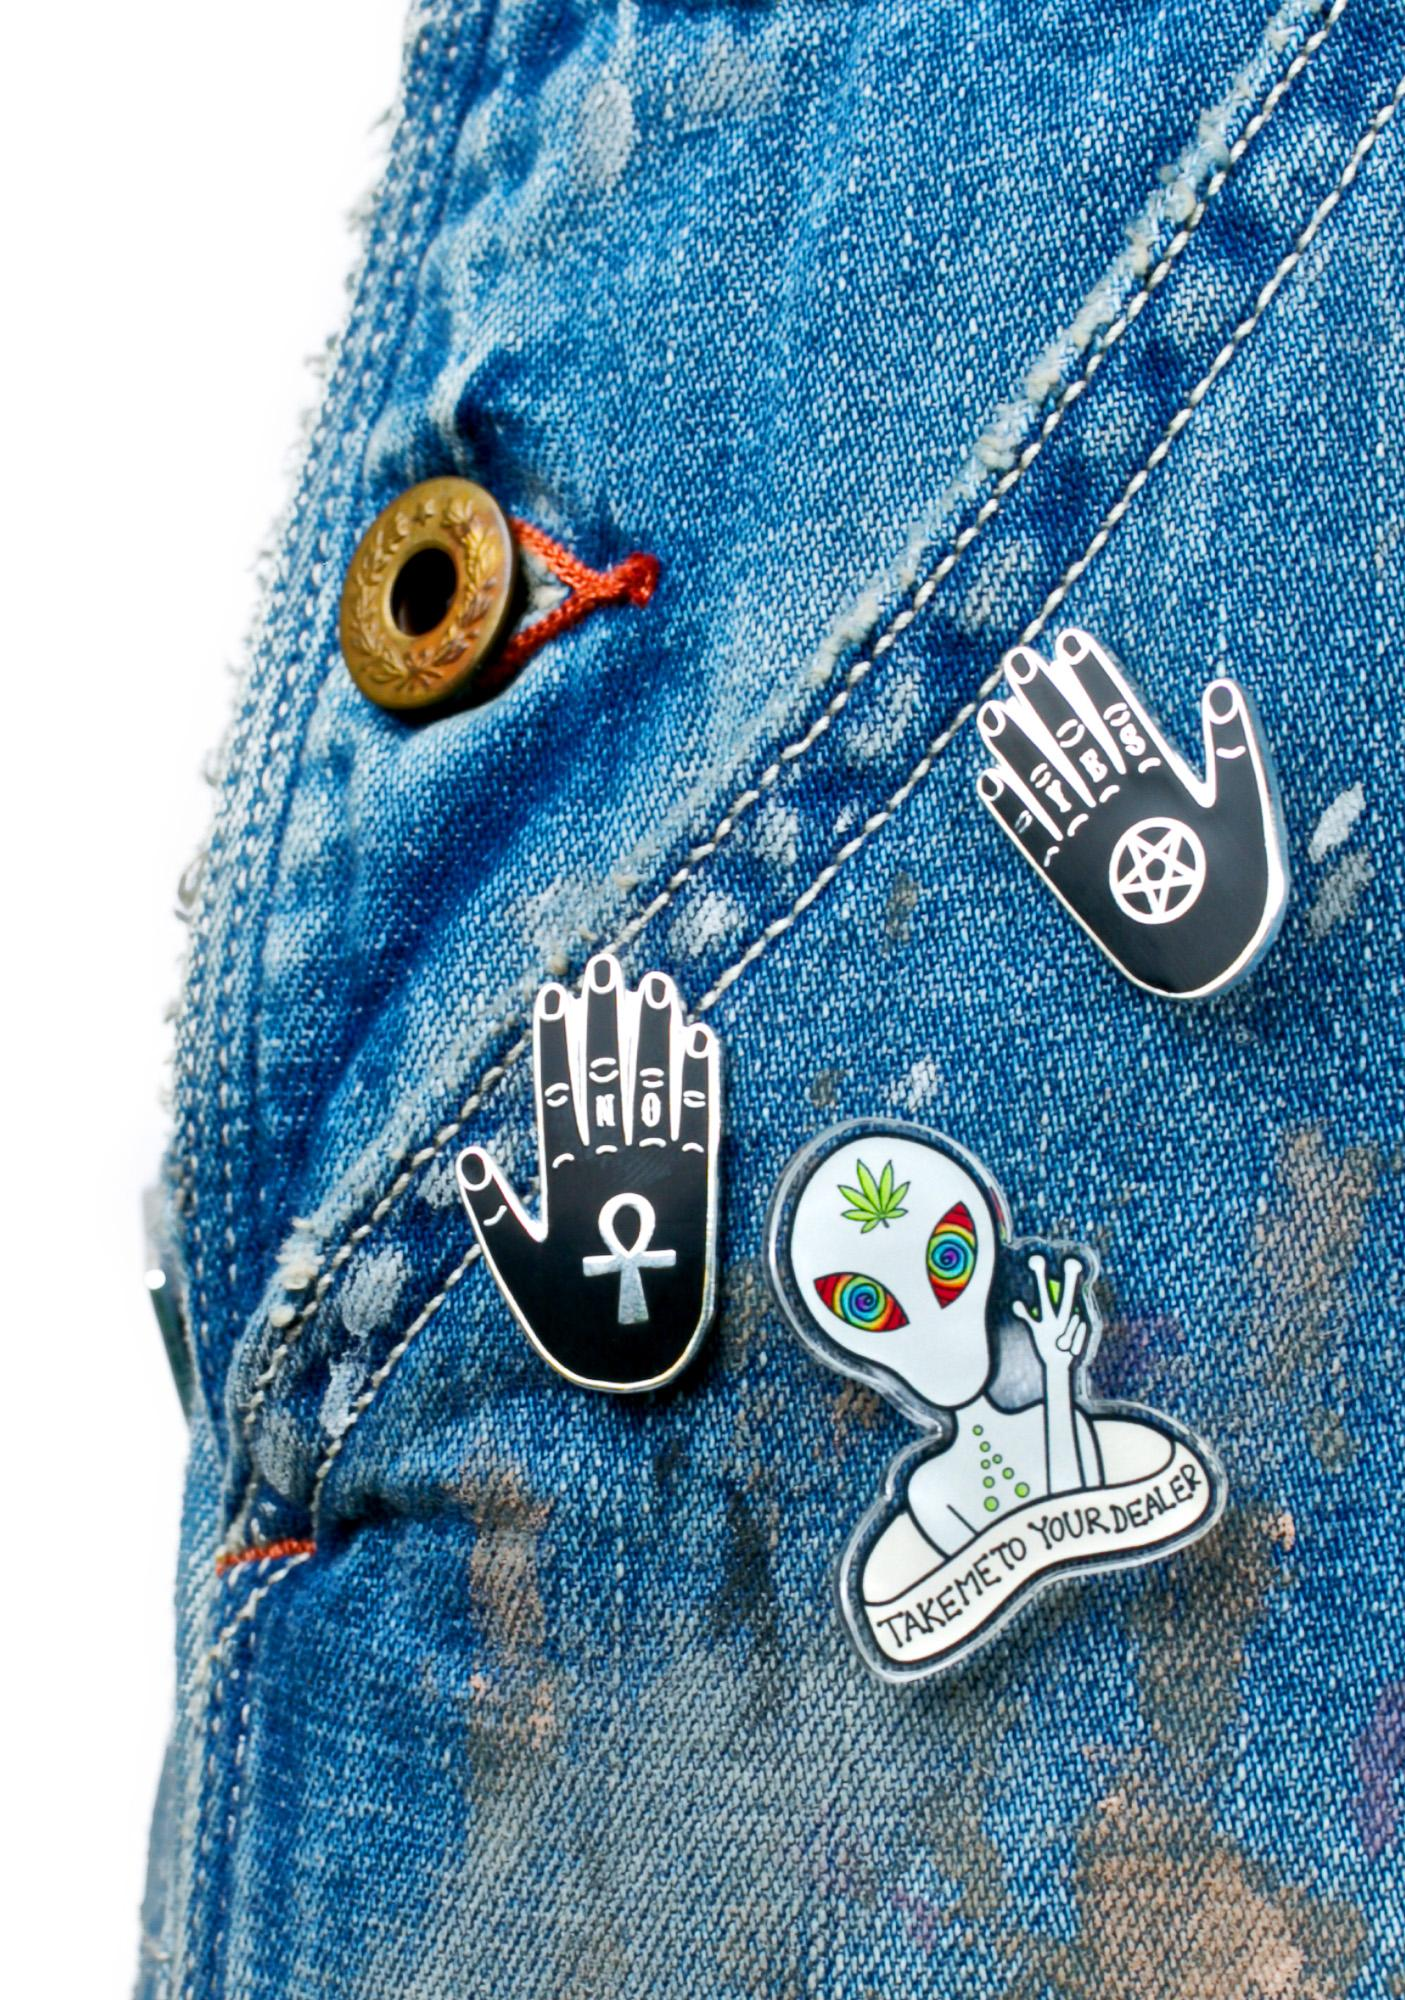 Punky Pins Yes & No Hands Pin Set